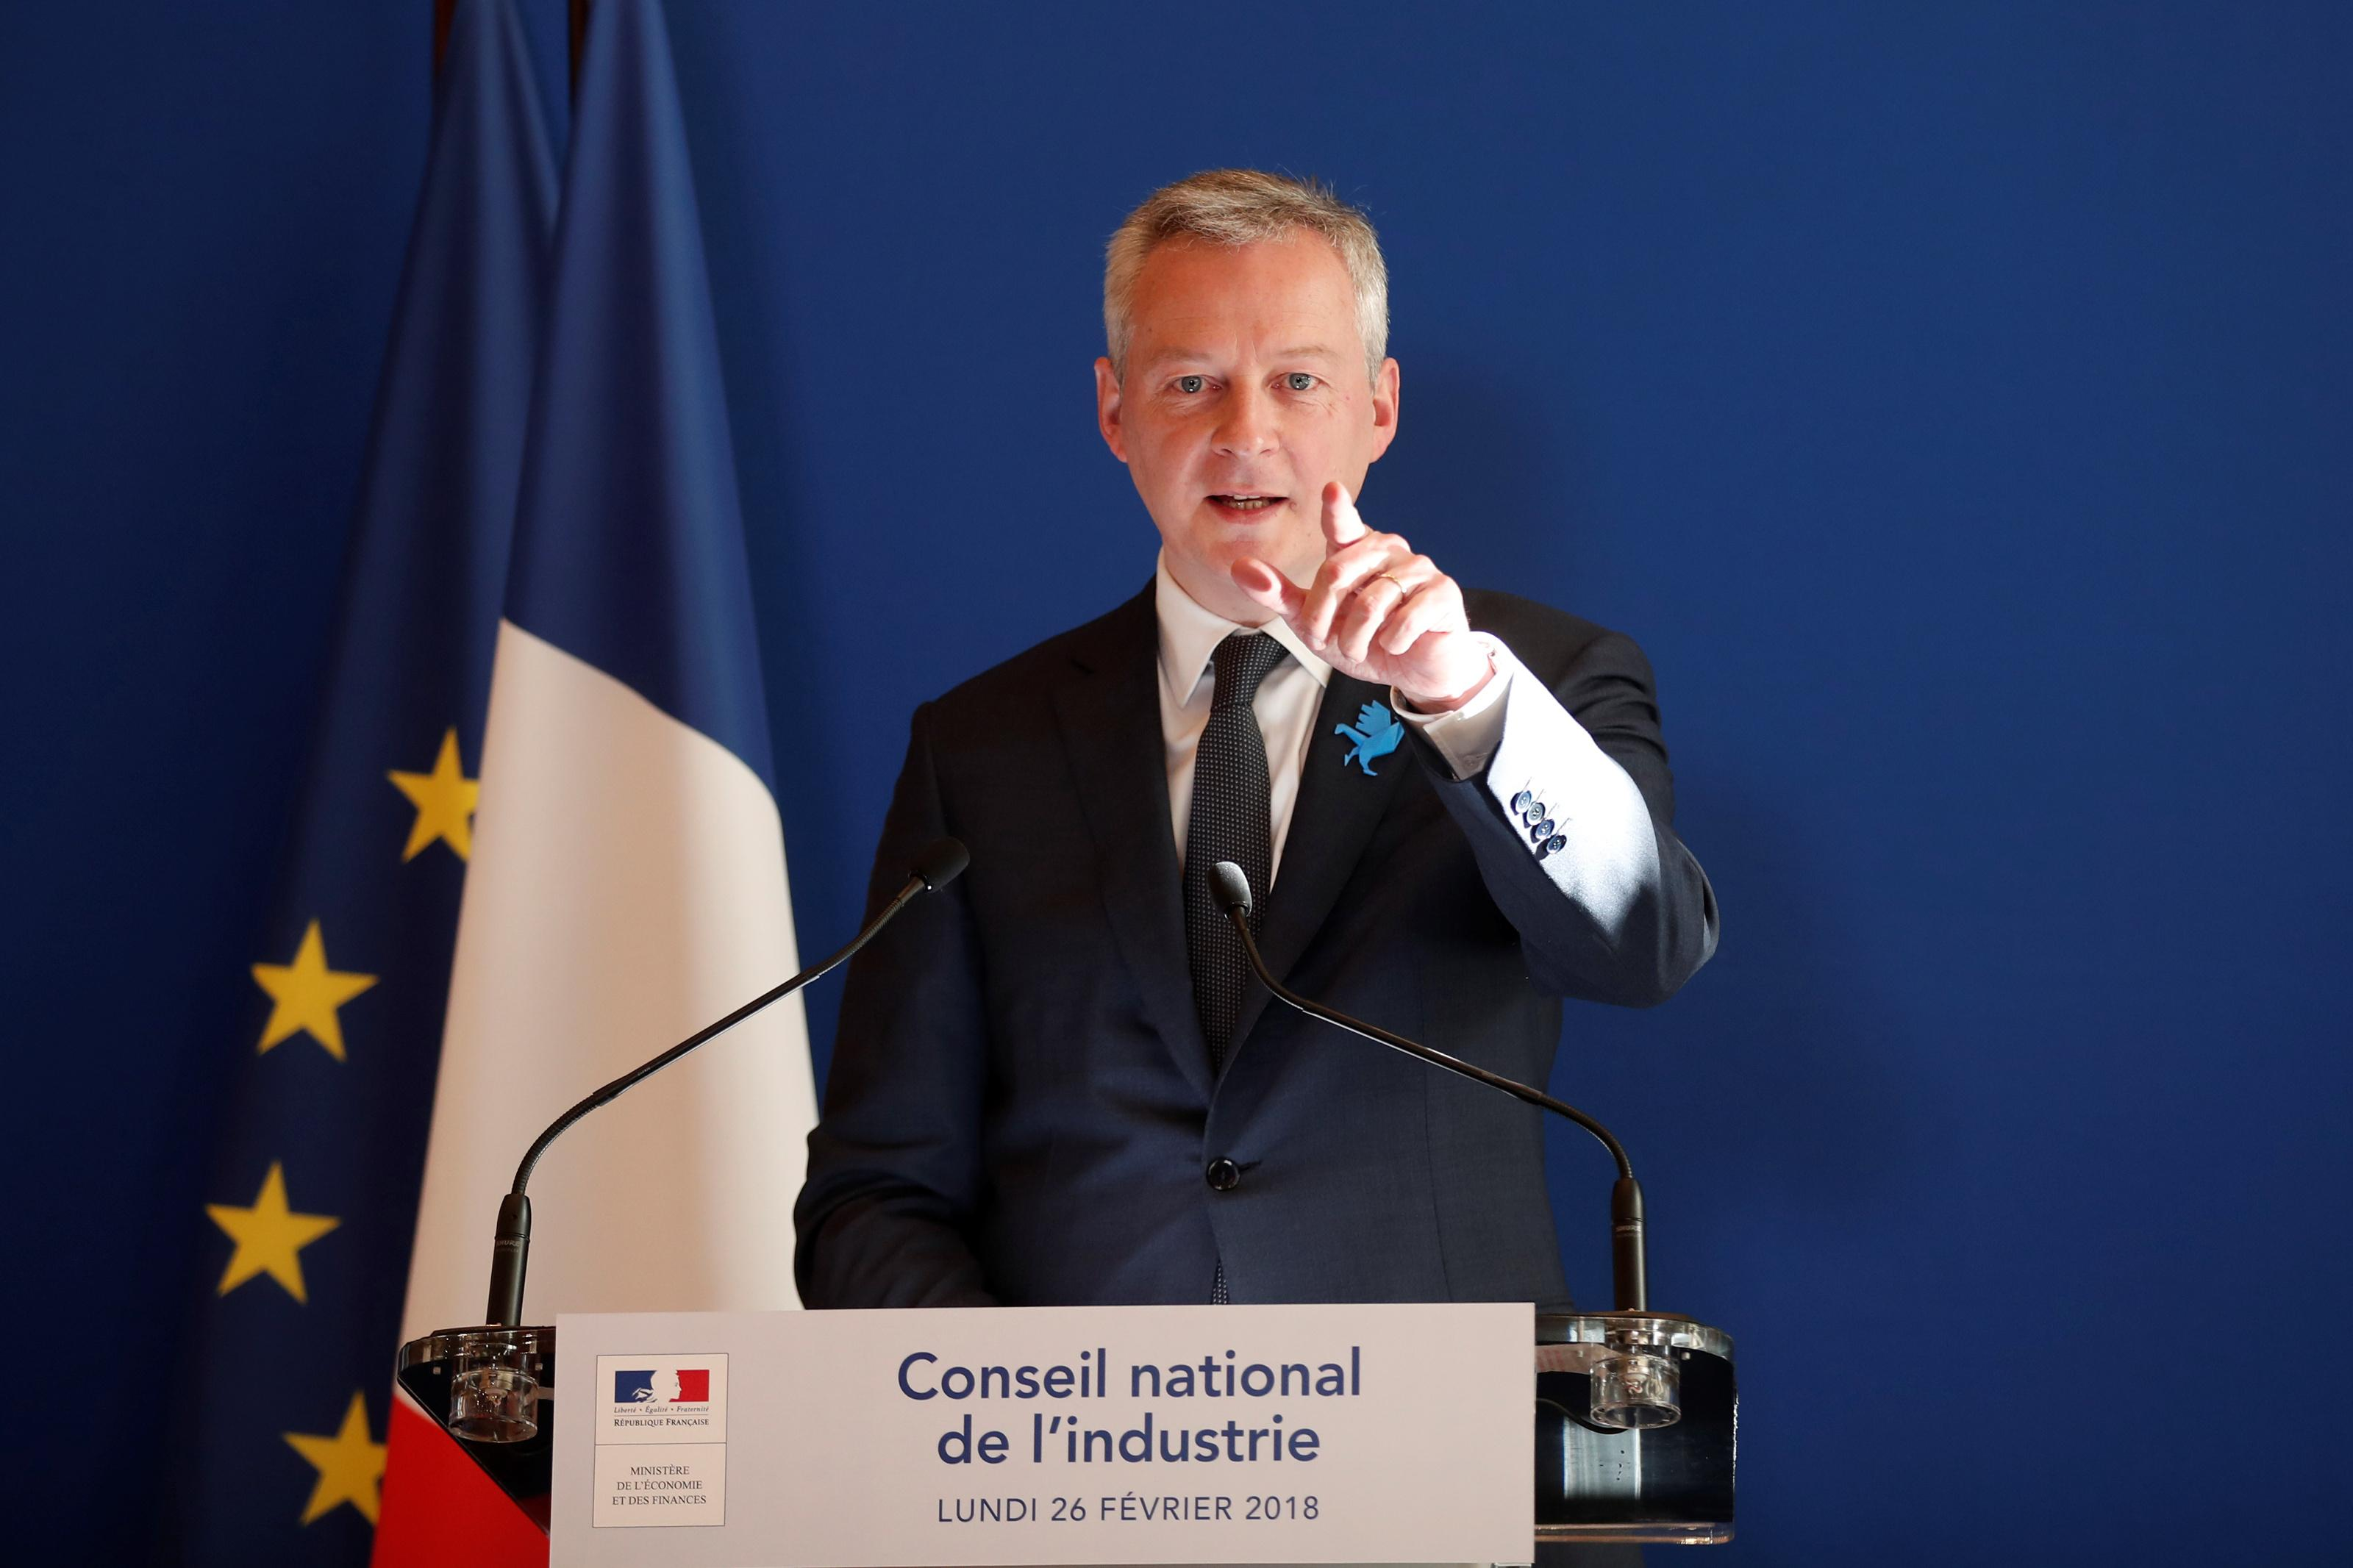 French Finance Minister Bruno Le Maire speaks during a news conference after a National Council of Industry at the Bercy Finance Ministry in Paris, France, February 26, 2018. Benoit Tessier